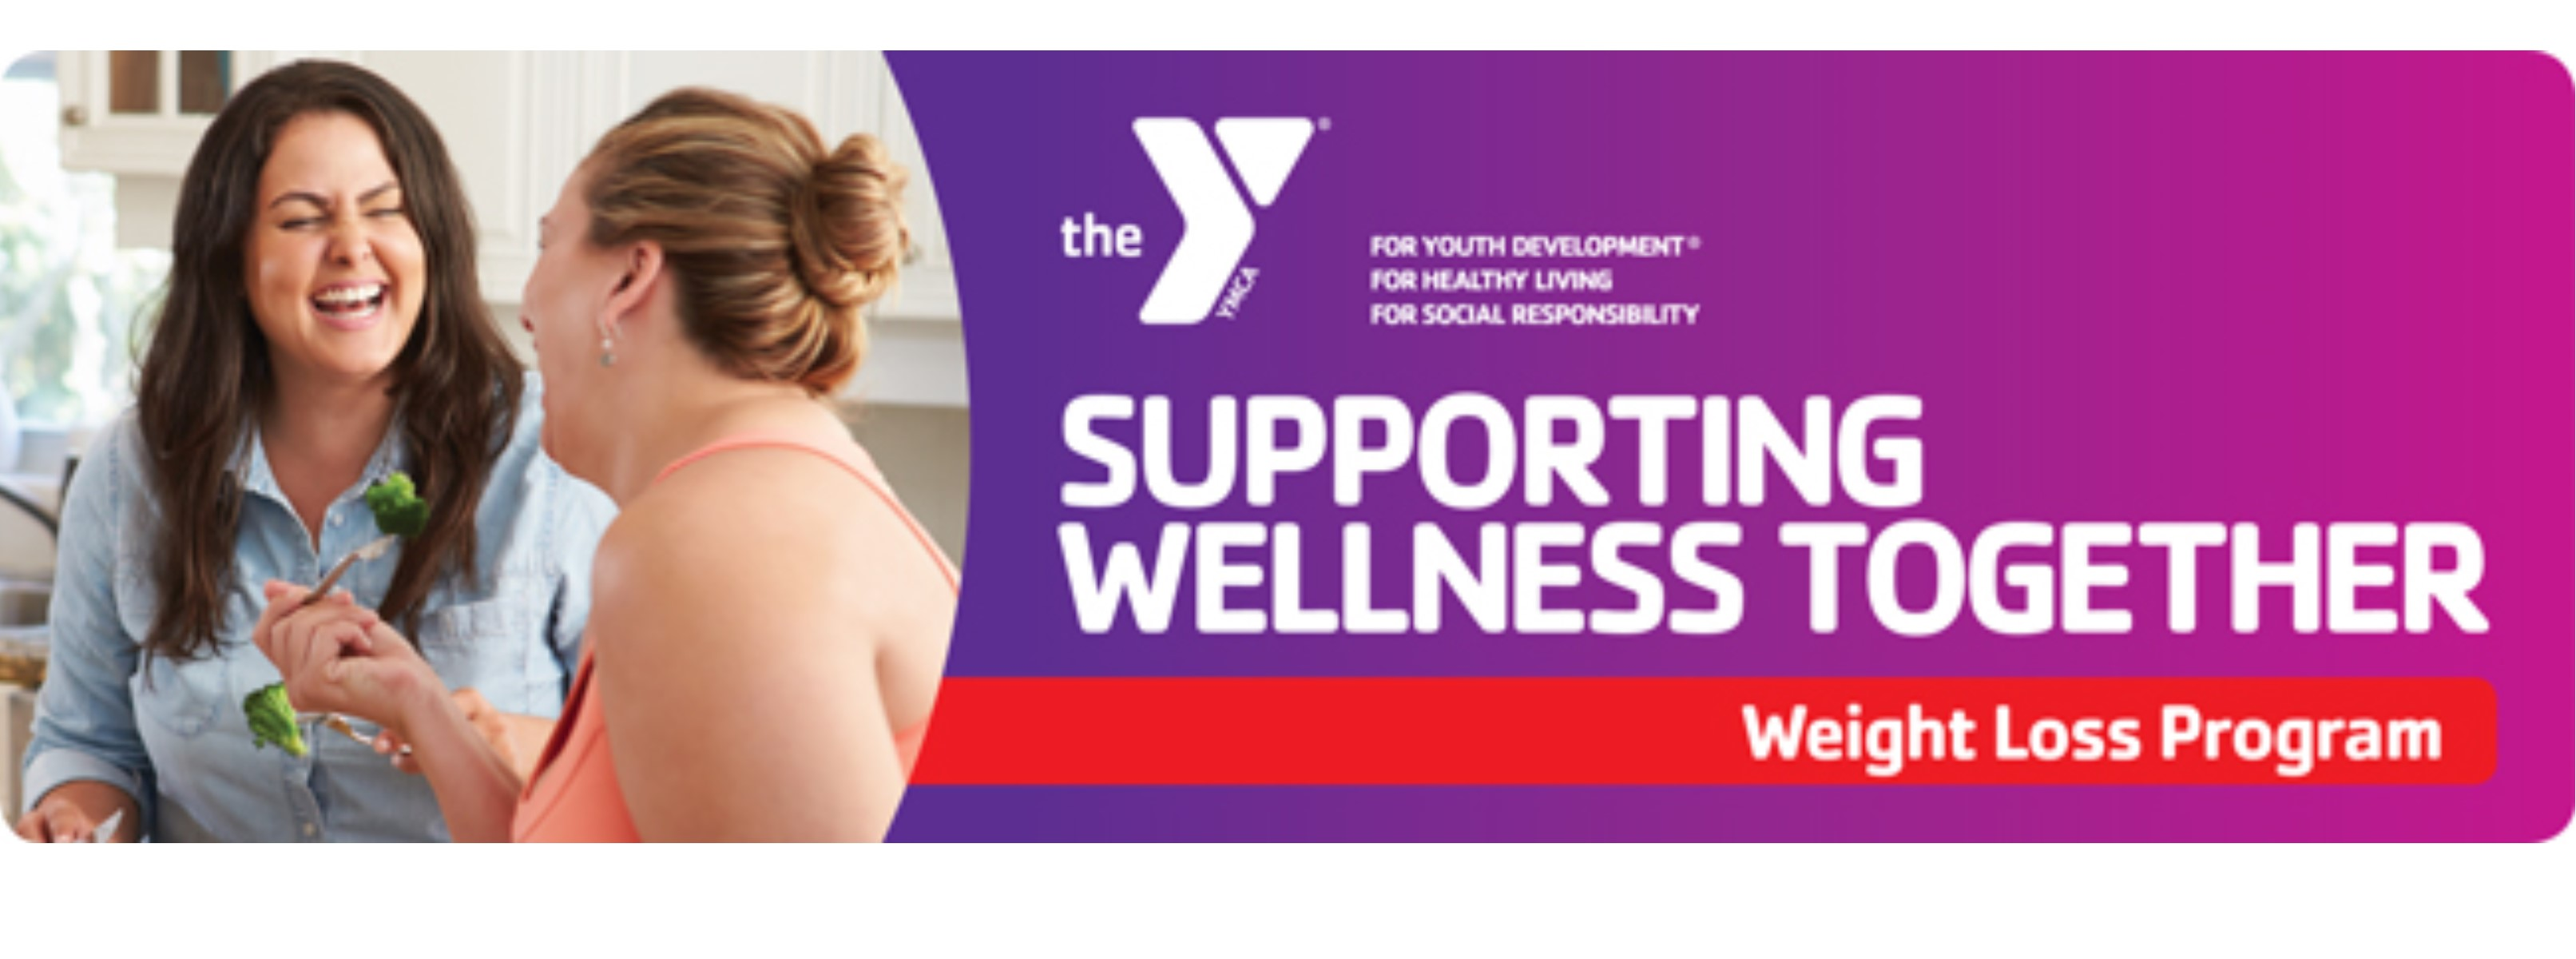 Support Wellness Together